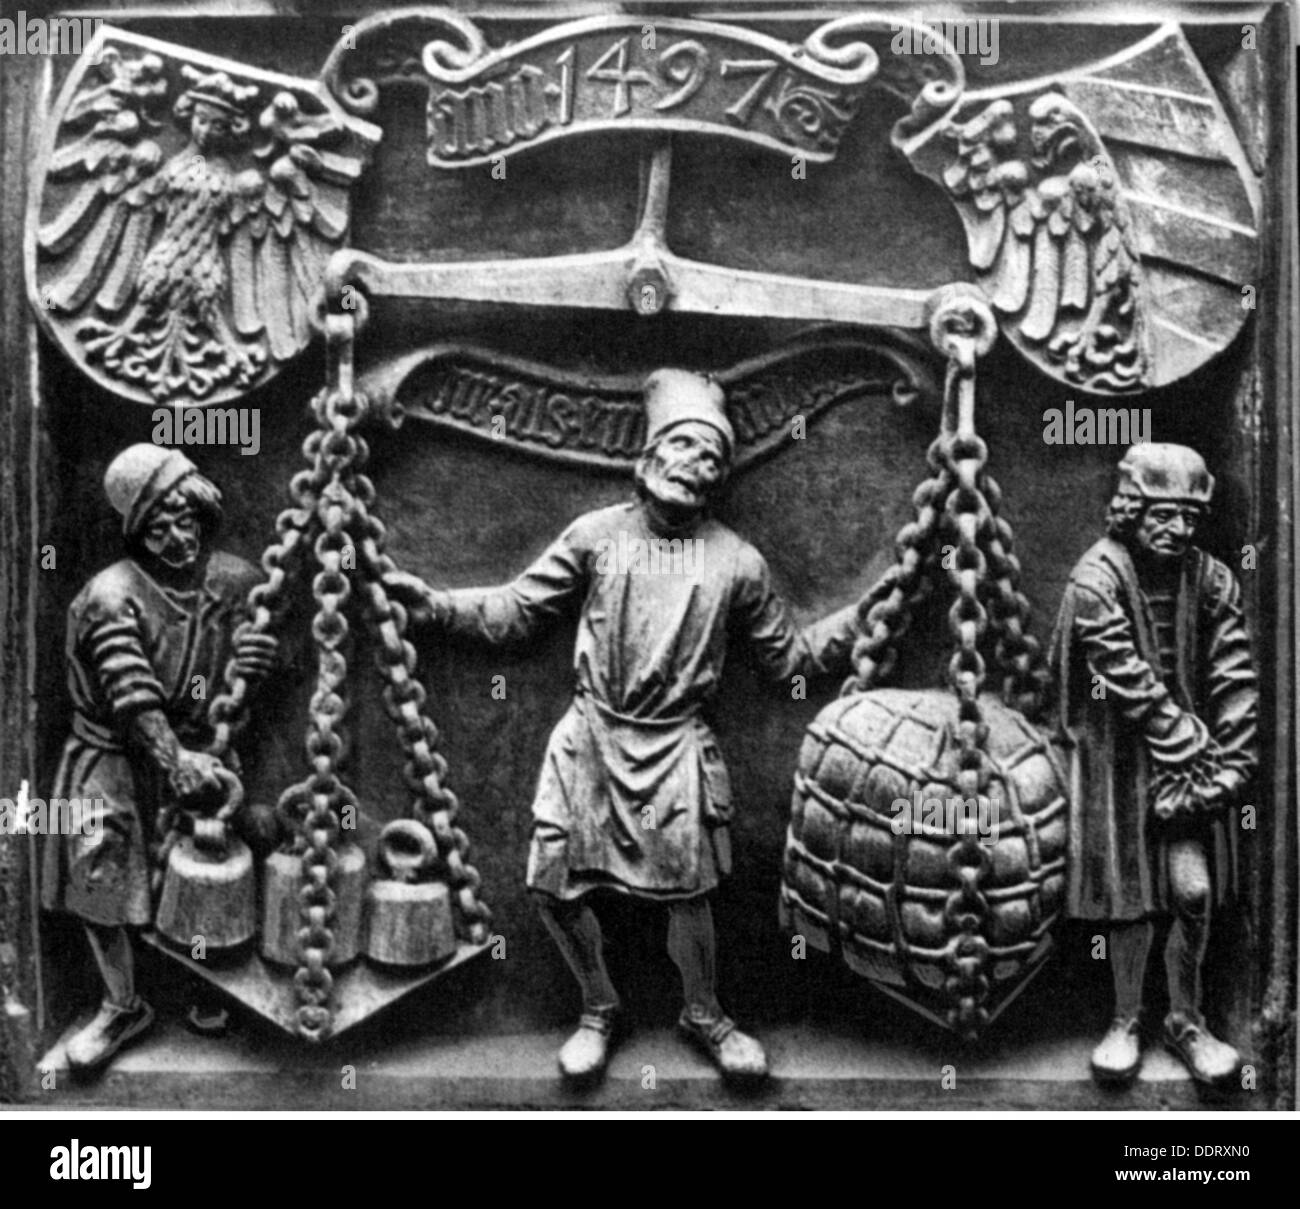 trade, merchants, weighing of the wares and payment of the taxes, relief, by Adam Kraft (1455 / 1460 - 1509), Nuremberg, 1497, Additional-Rights-Clearences-NA - Stock Image